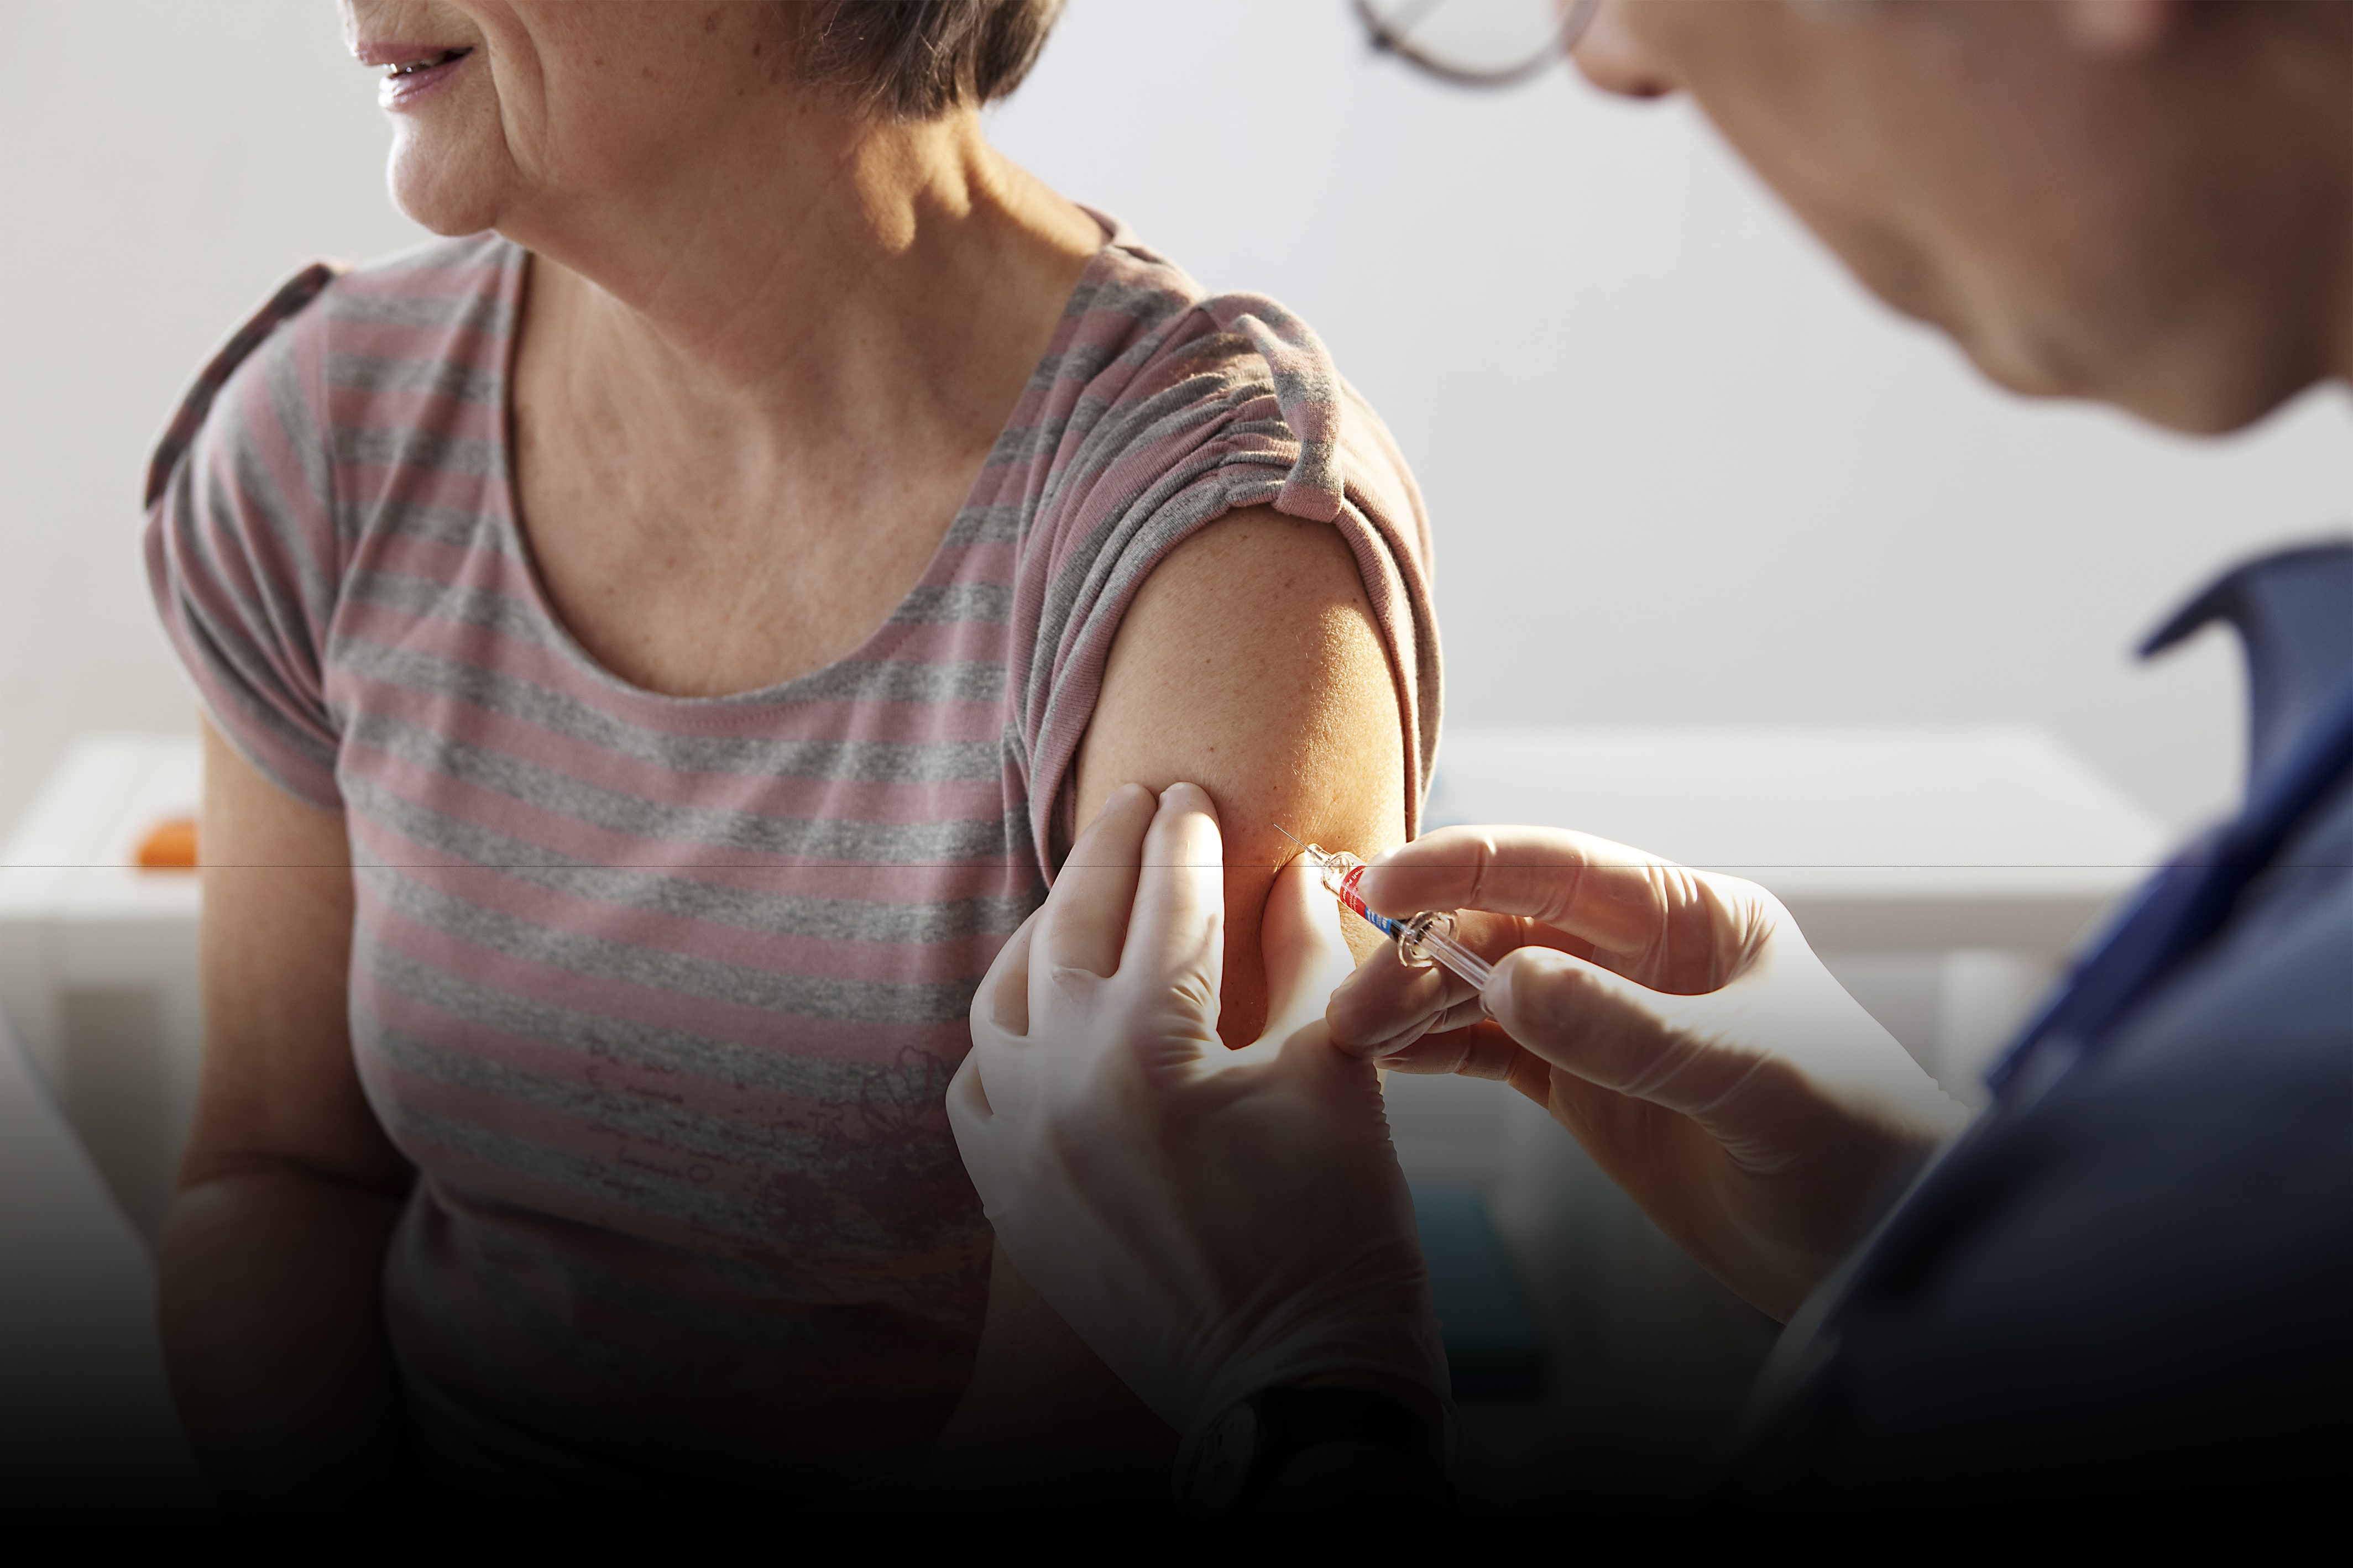 Recommended Vaccines and Health Screenings for Ages 50 and Up